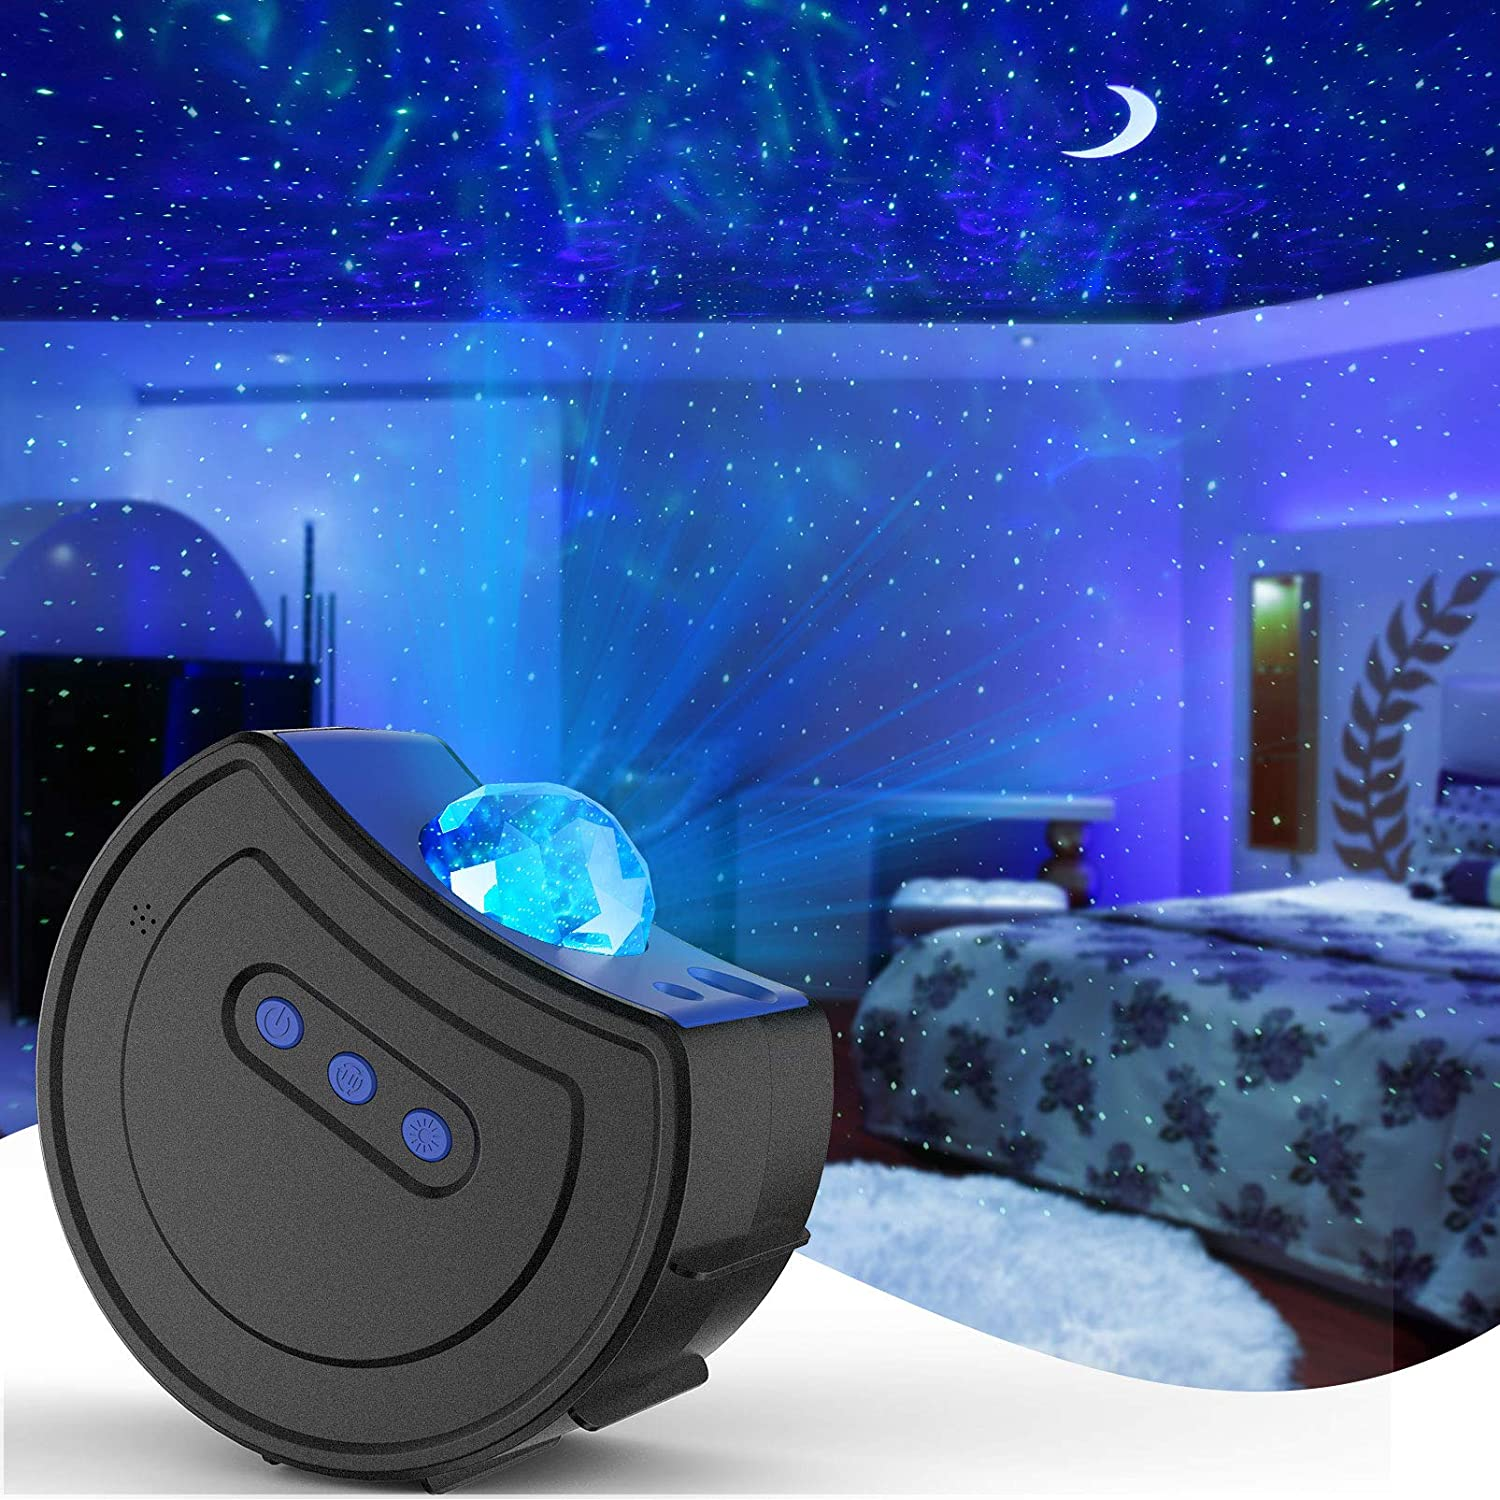 Amazon Com Star Projector Galaxy Night Light Projector Hisome Moon Sky Light For Bedroom Ceiling Led Starlights Starry Night Light Planetarium Nebula Cove Projector For Kids And Adults Party Birthday Wedding Home Improvement